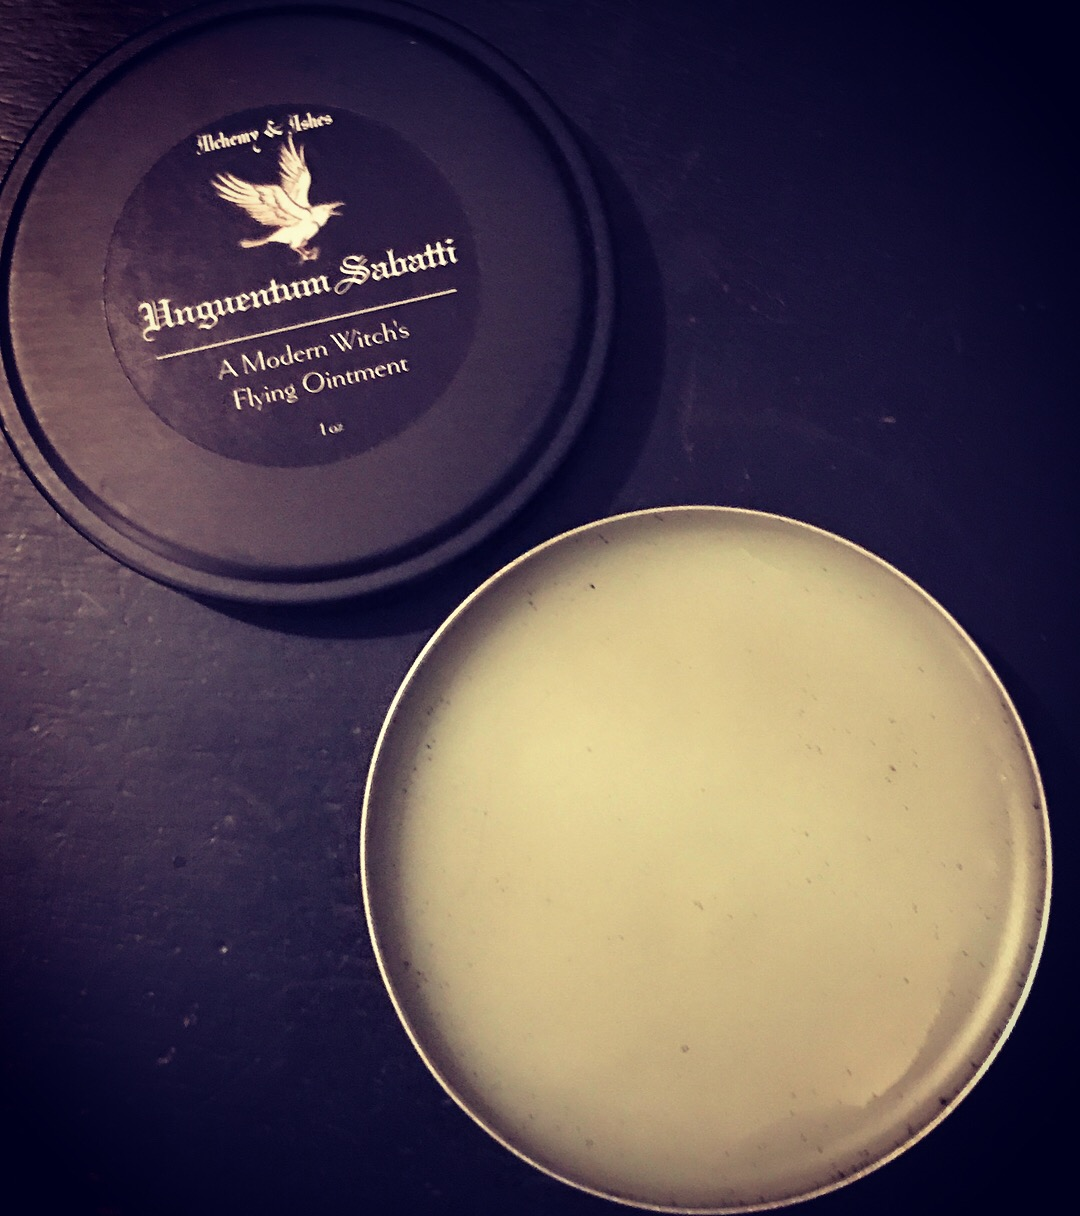 Alchemy and Ashes Flying Ointment